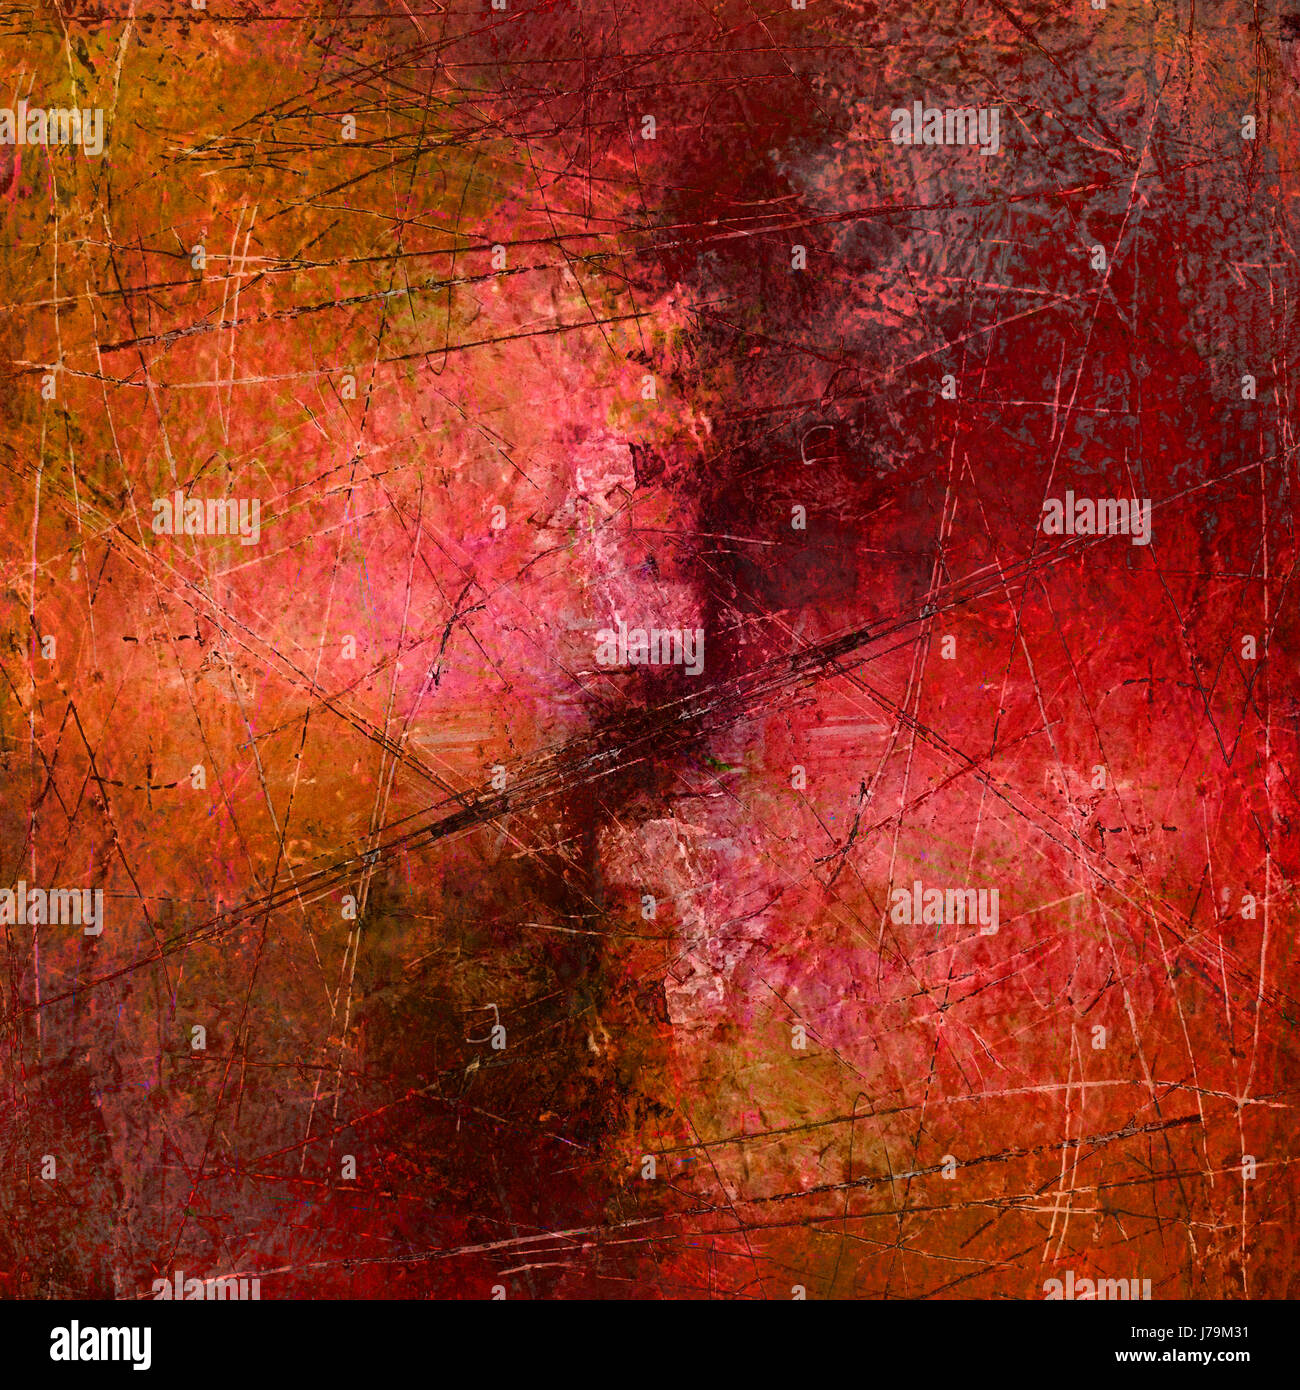 Art Painting Paint Abstract Painted Paintings Scratch Texture Engineering